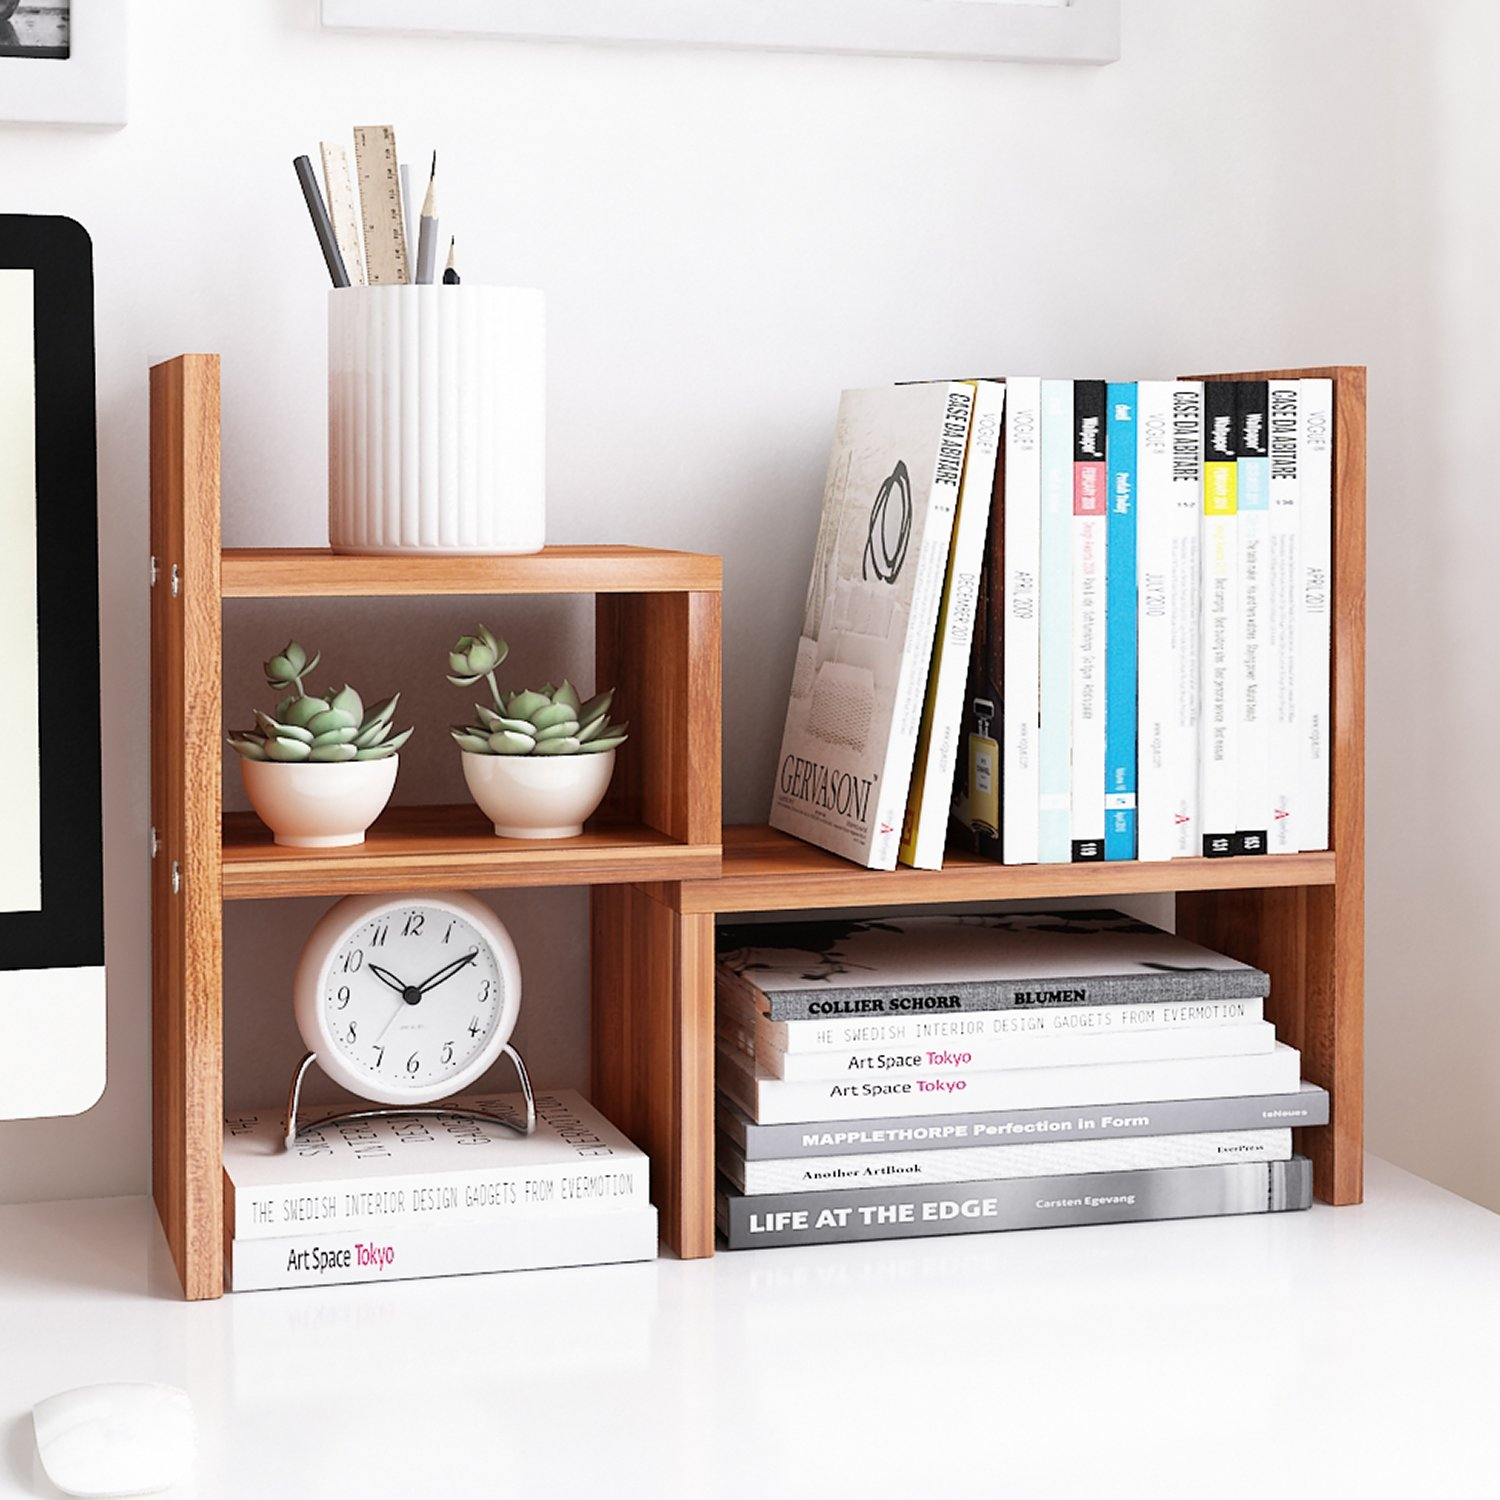 Jerry & Maggie - Desktop Organizer Office Storage Rack Adjustable Wood Display Shelf | Birthday Gifts - Toy - Home Decor | - Free Style Rotation Display - True Natural Stand Shelf (Natrual Wood Tone)